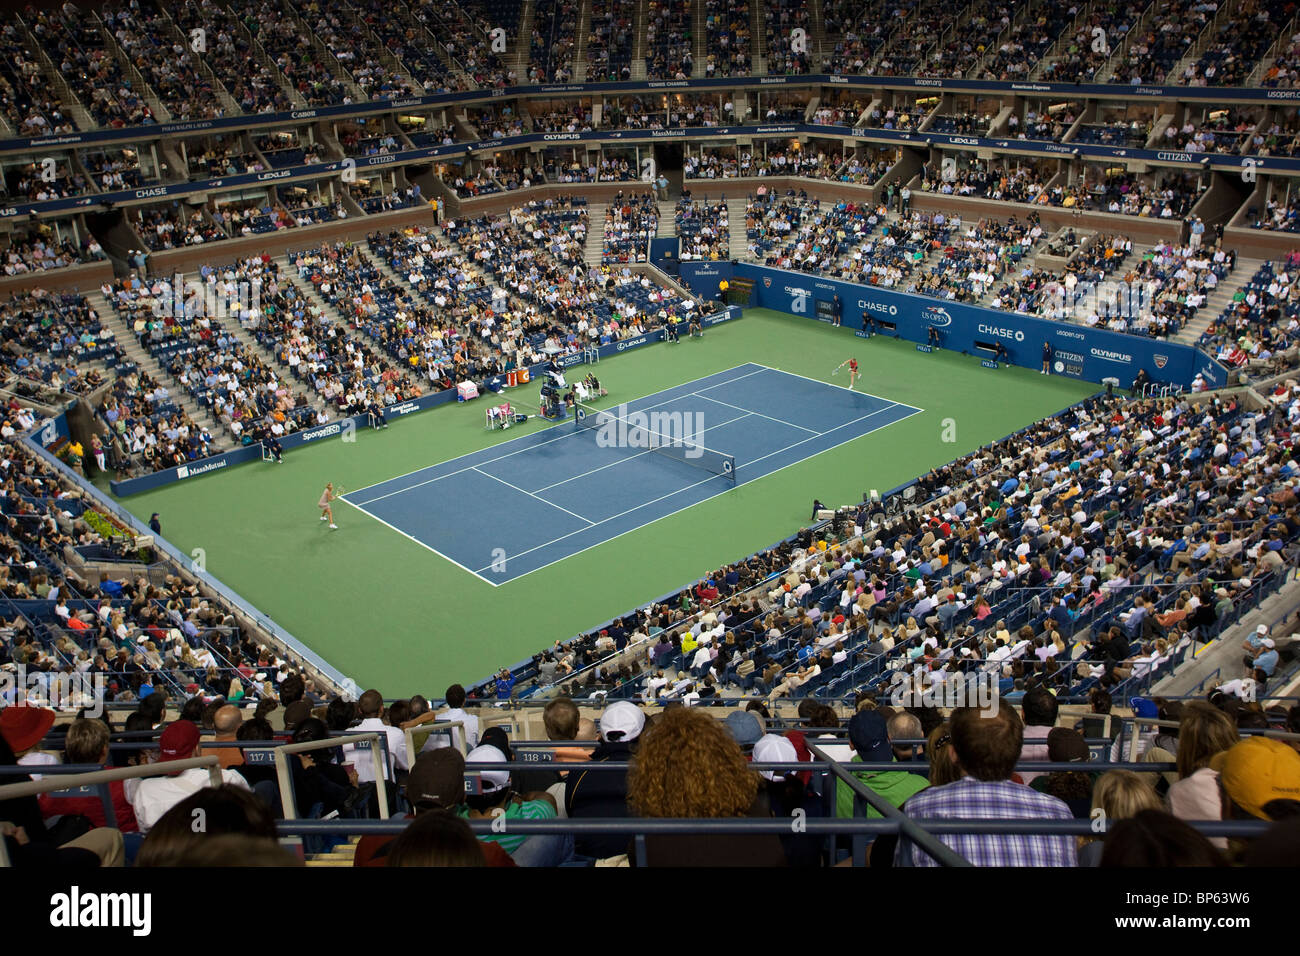 Women's Singles Final between Kim Clijsters (BEL) and Caroline Wozniacki (DEN) competing at the 2009 US Open - Stock Image